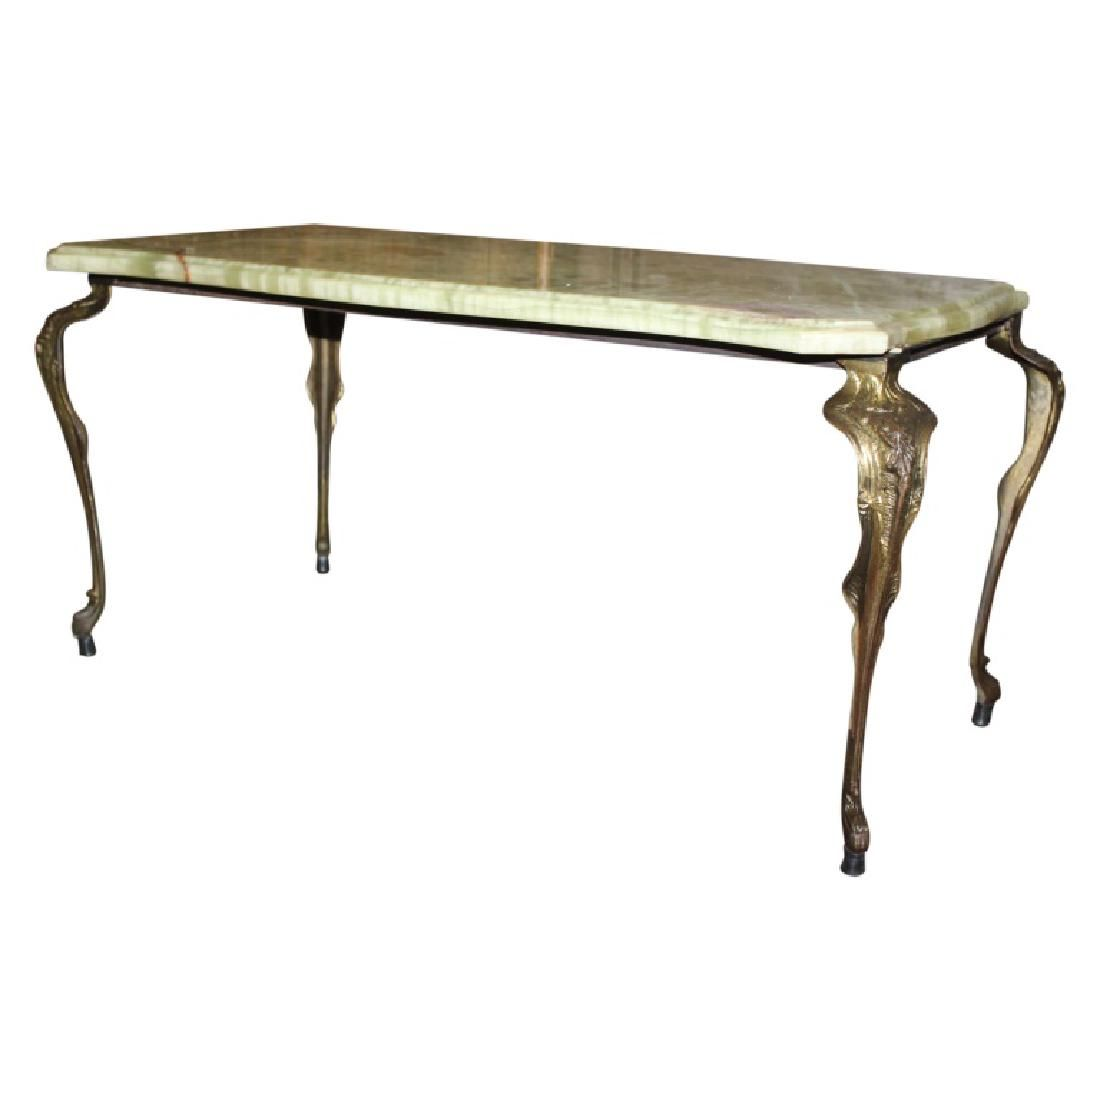 Stunning Antique Coffee Table with Onyx top.